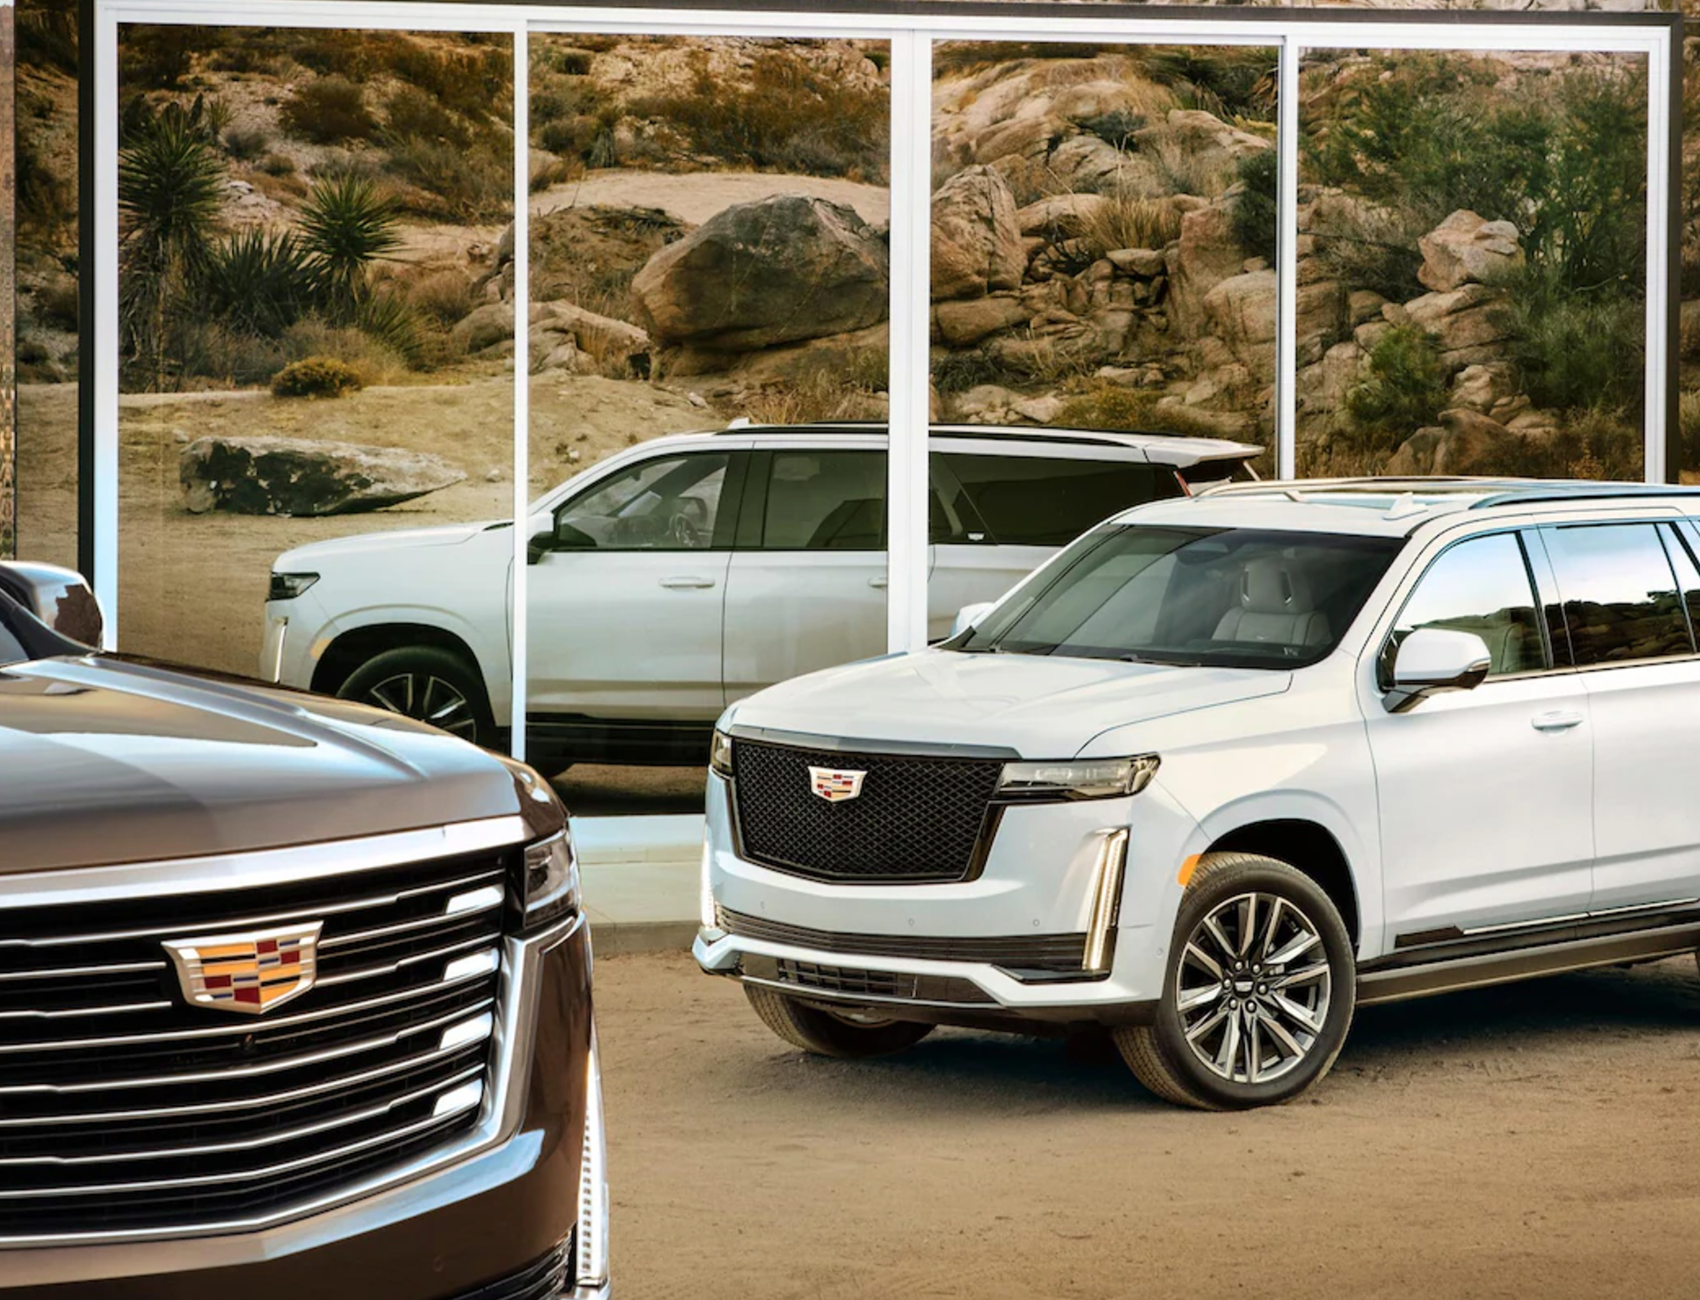 Customizing your Cadillac is quick and easy when you work with Baierl Cadillac